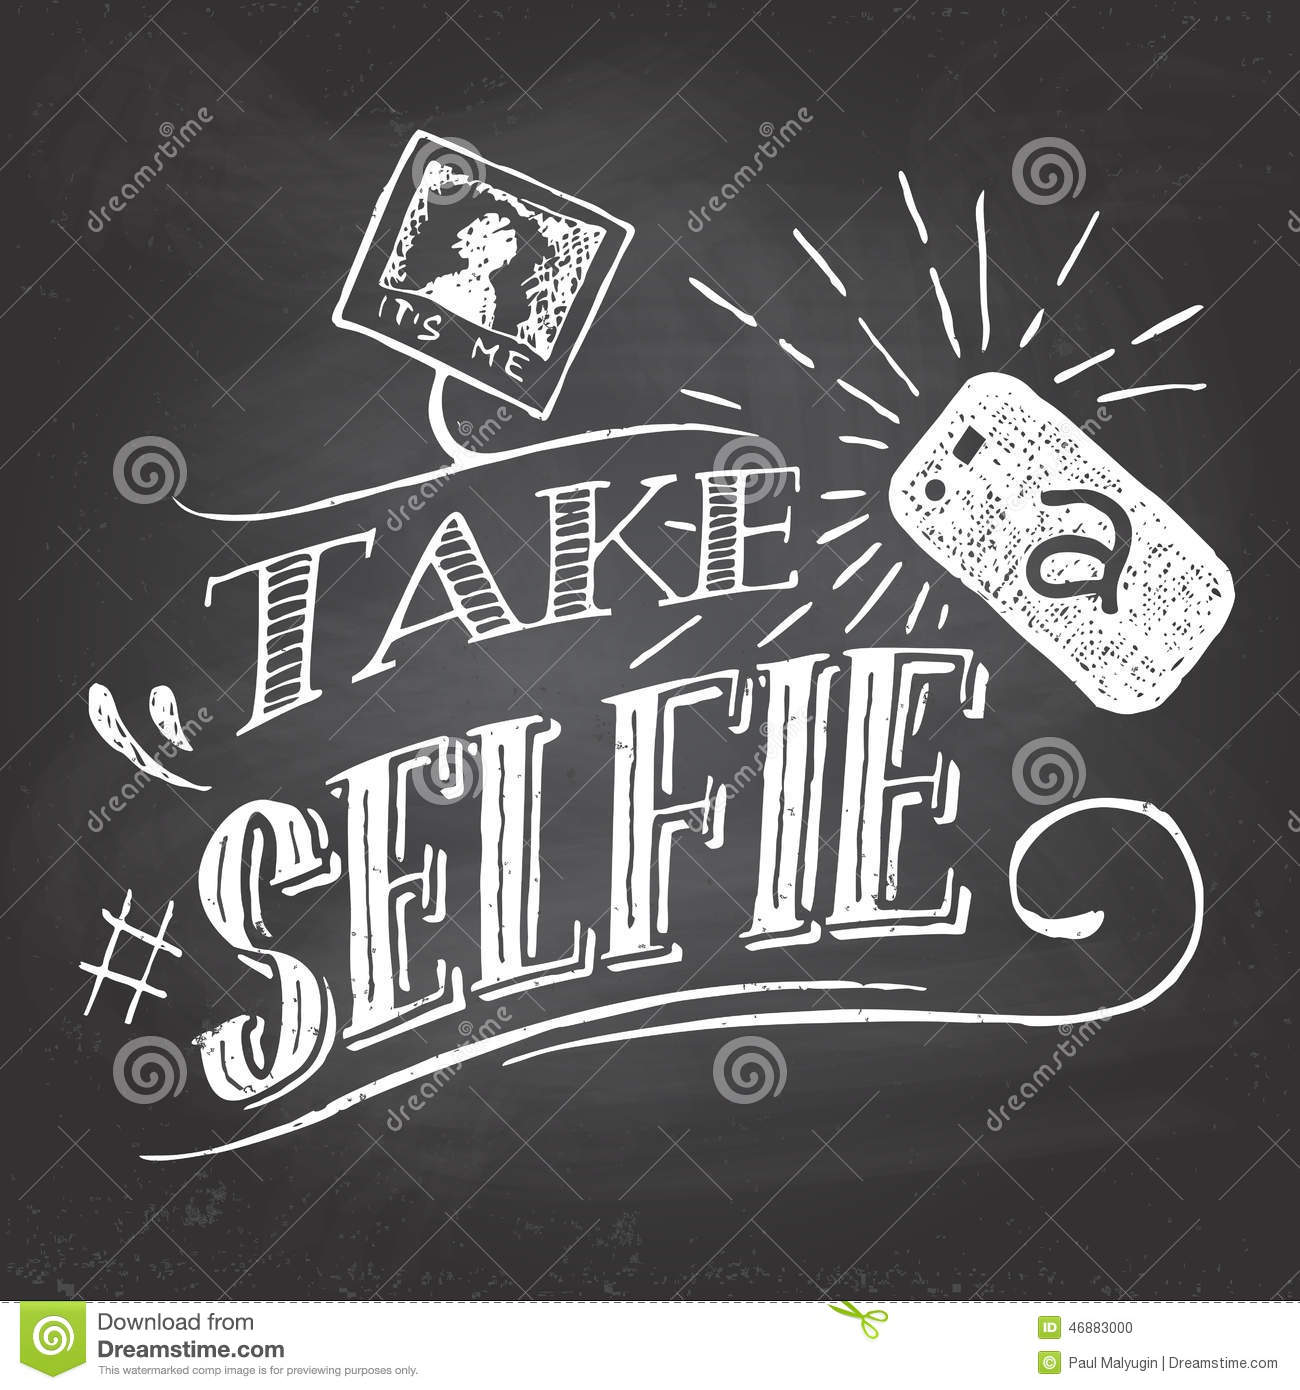 Take a selfie on blackboard